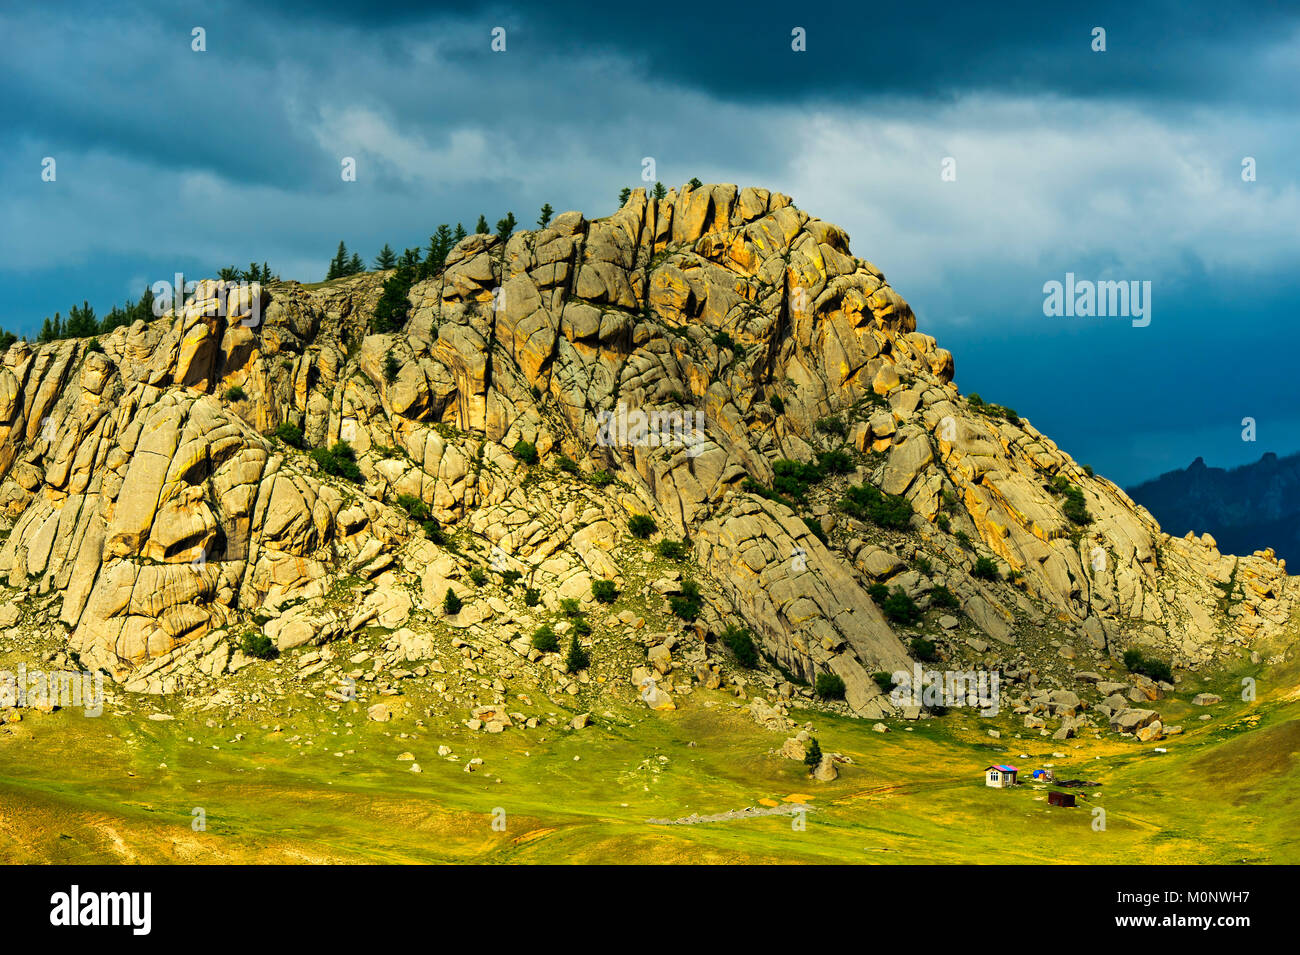 Mountain in the steppe landscape,Gorchi-Tereldsch National Park,Mongolia - Stock Image